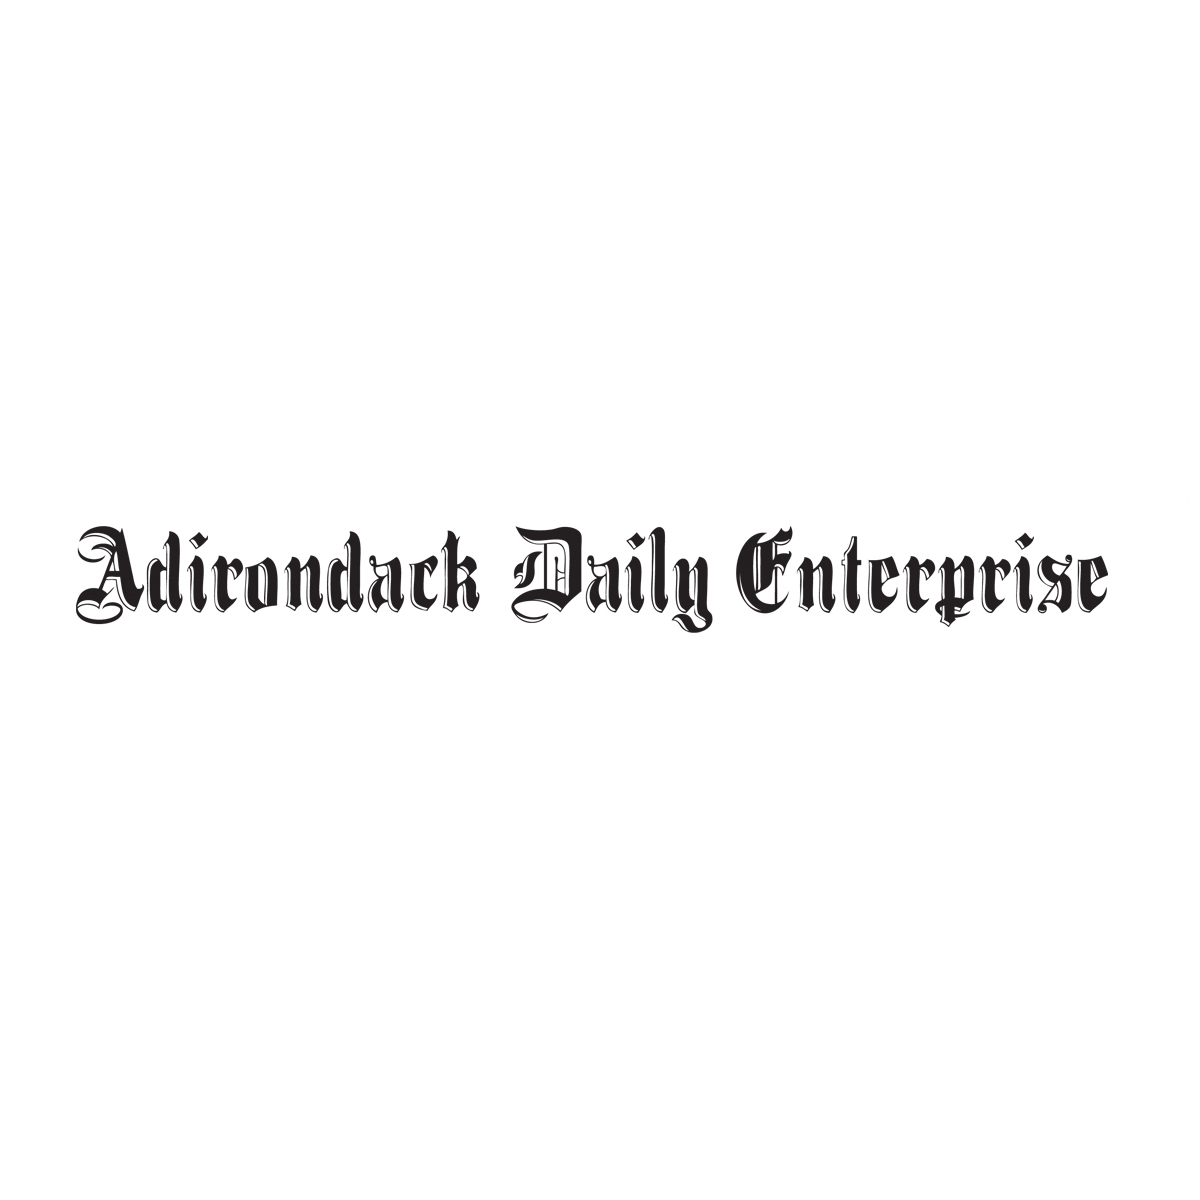 Jefferson County's Solar Panel Facility Could Create Hundreds of Jobs News, Sports, Jobs - The Adirondack Daily Enterprise